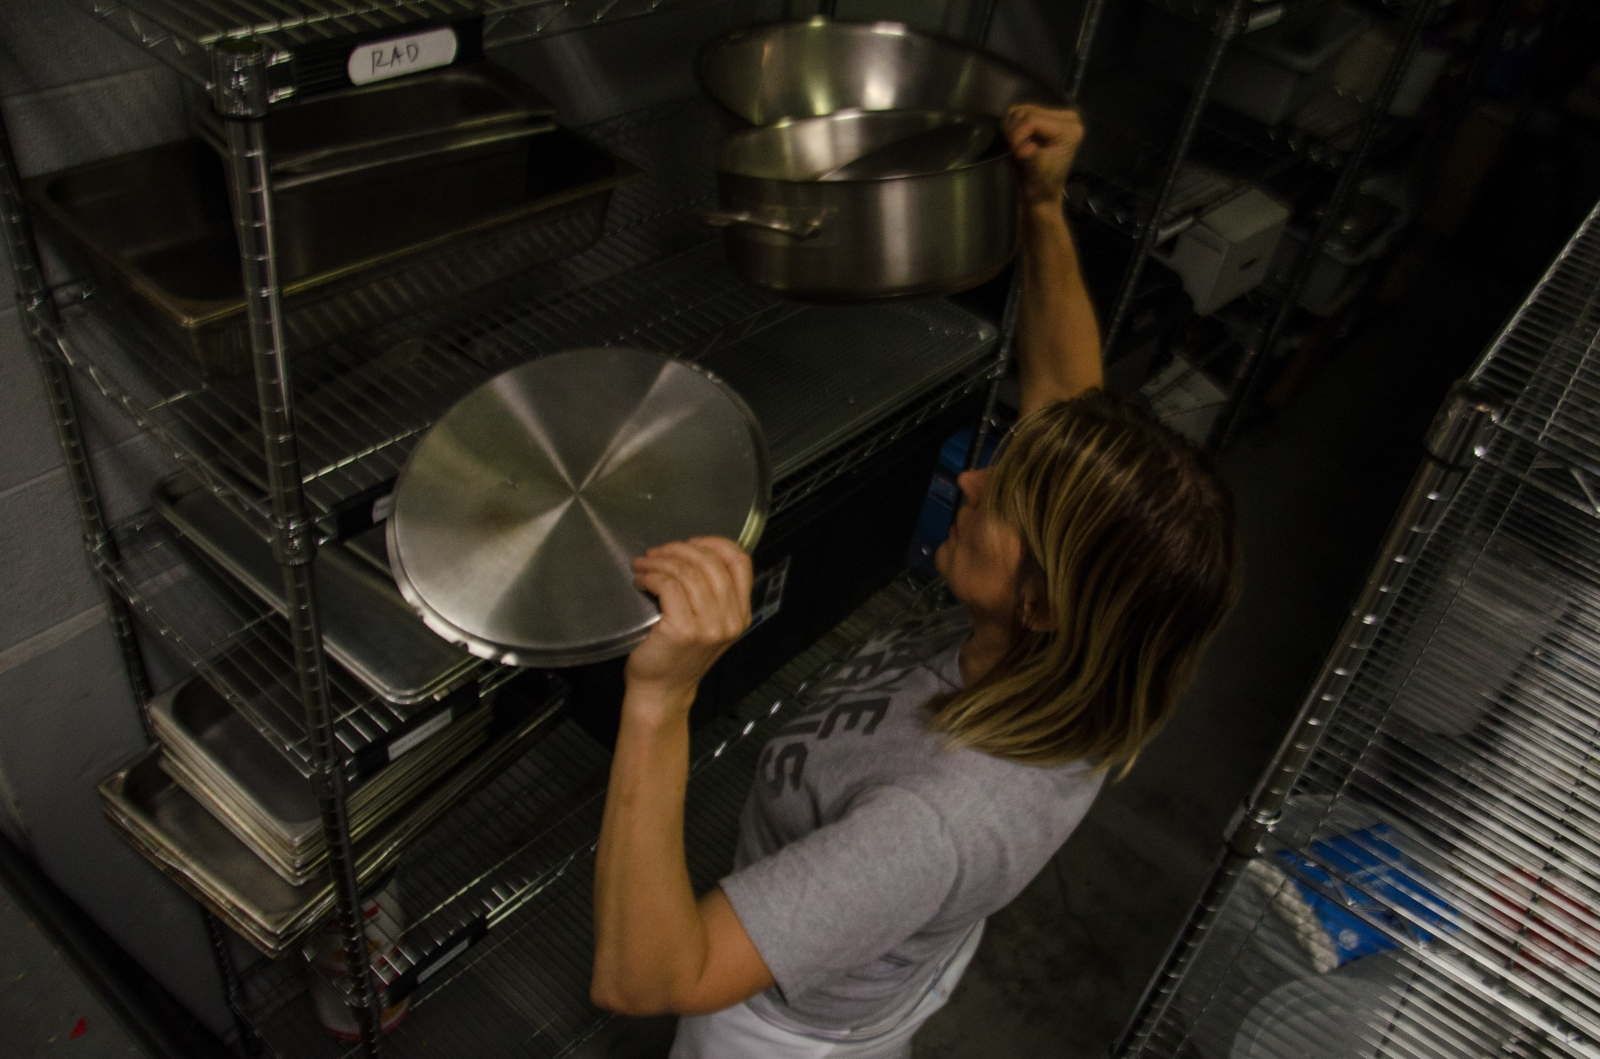 Kelly looks for the right pots and pans in the shared commissary space in preparation for a full list of orders for the next day.